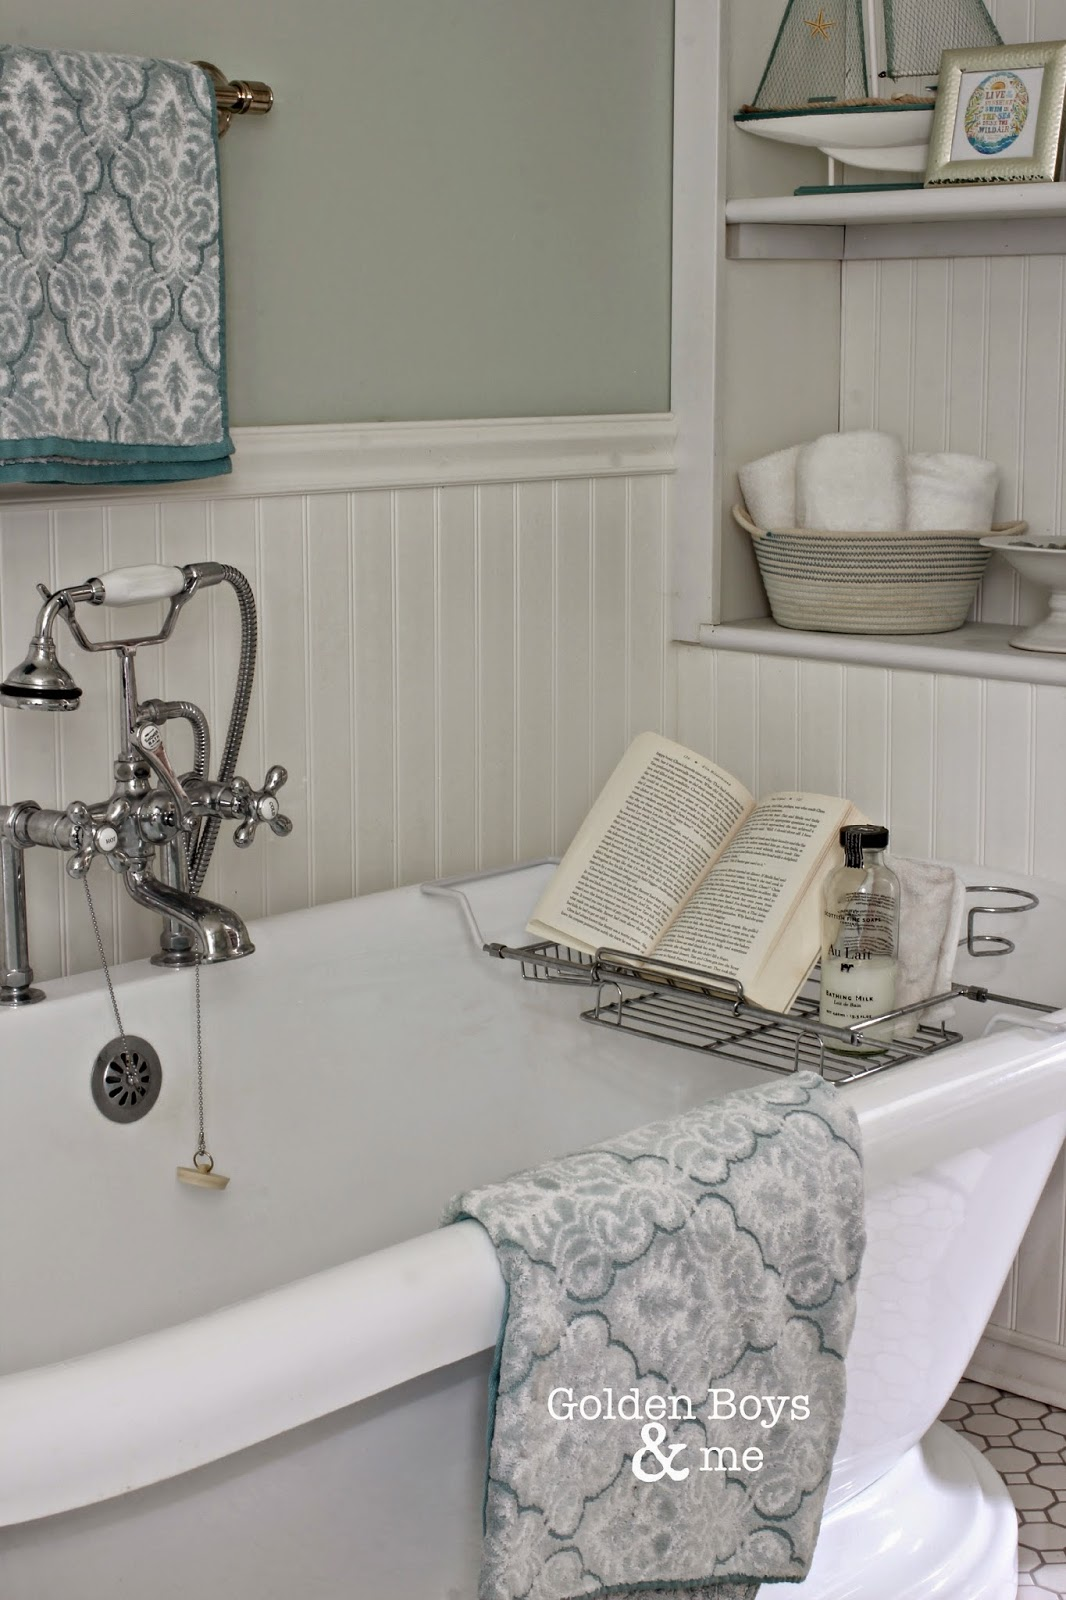 Pedestal tub with vintage style faucet and over the tub rack